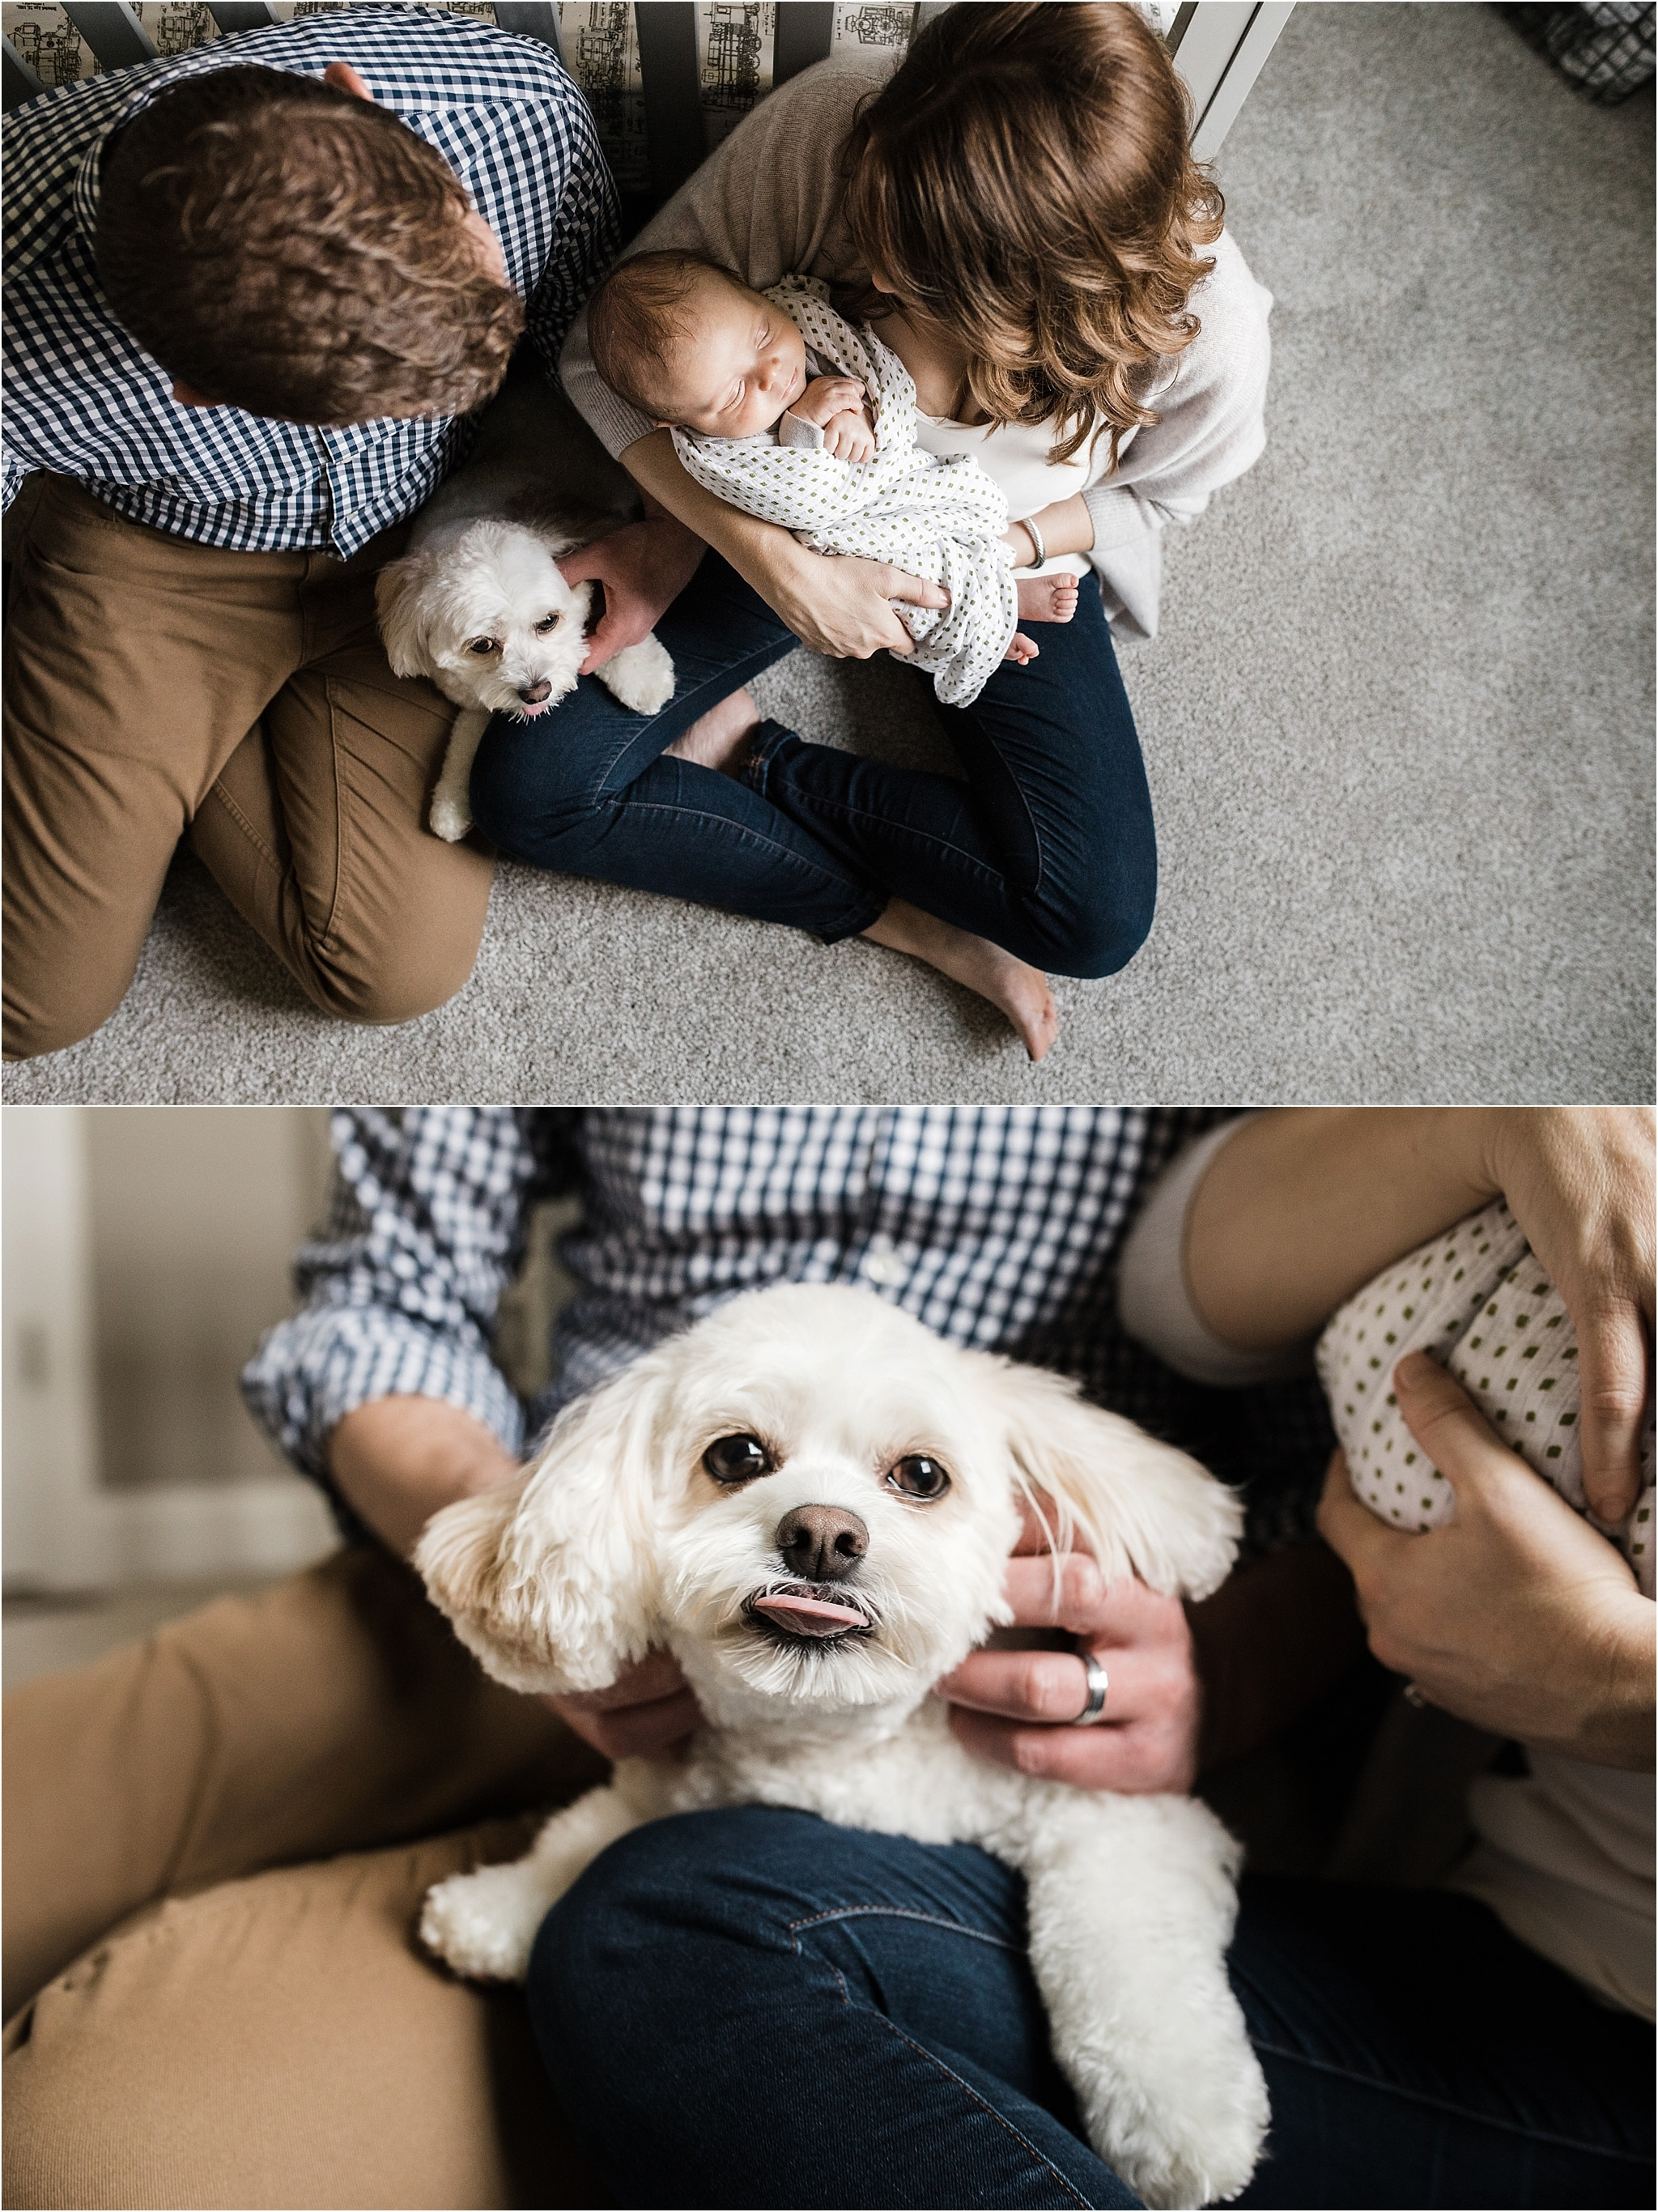 parents holding family dog and newborn baby